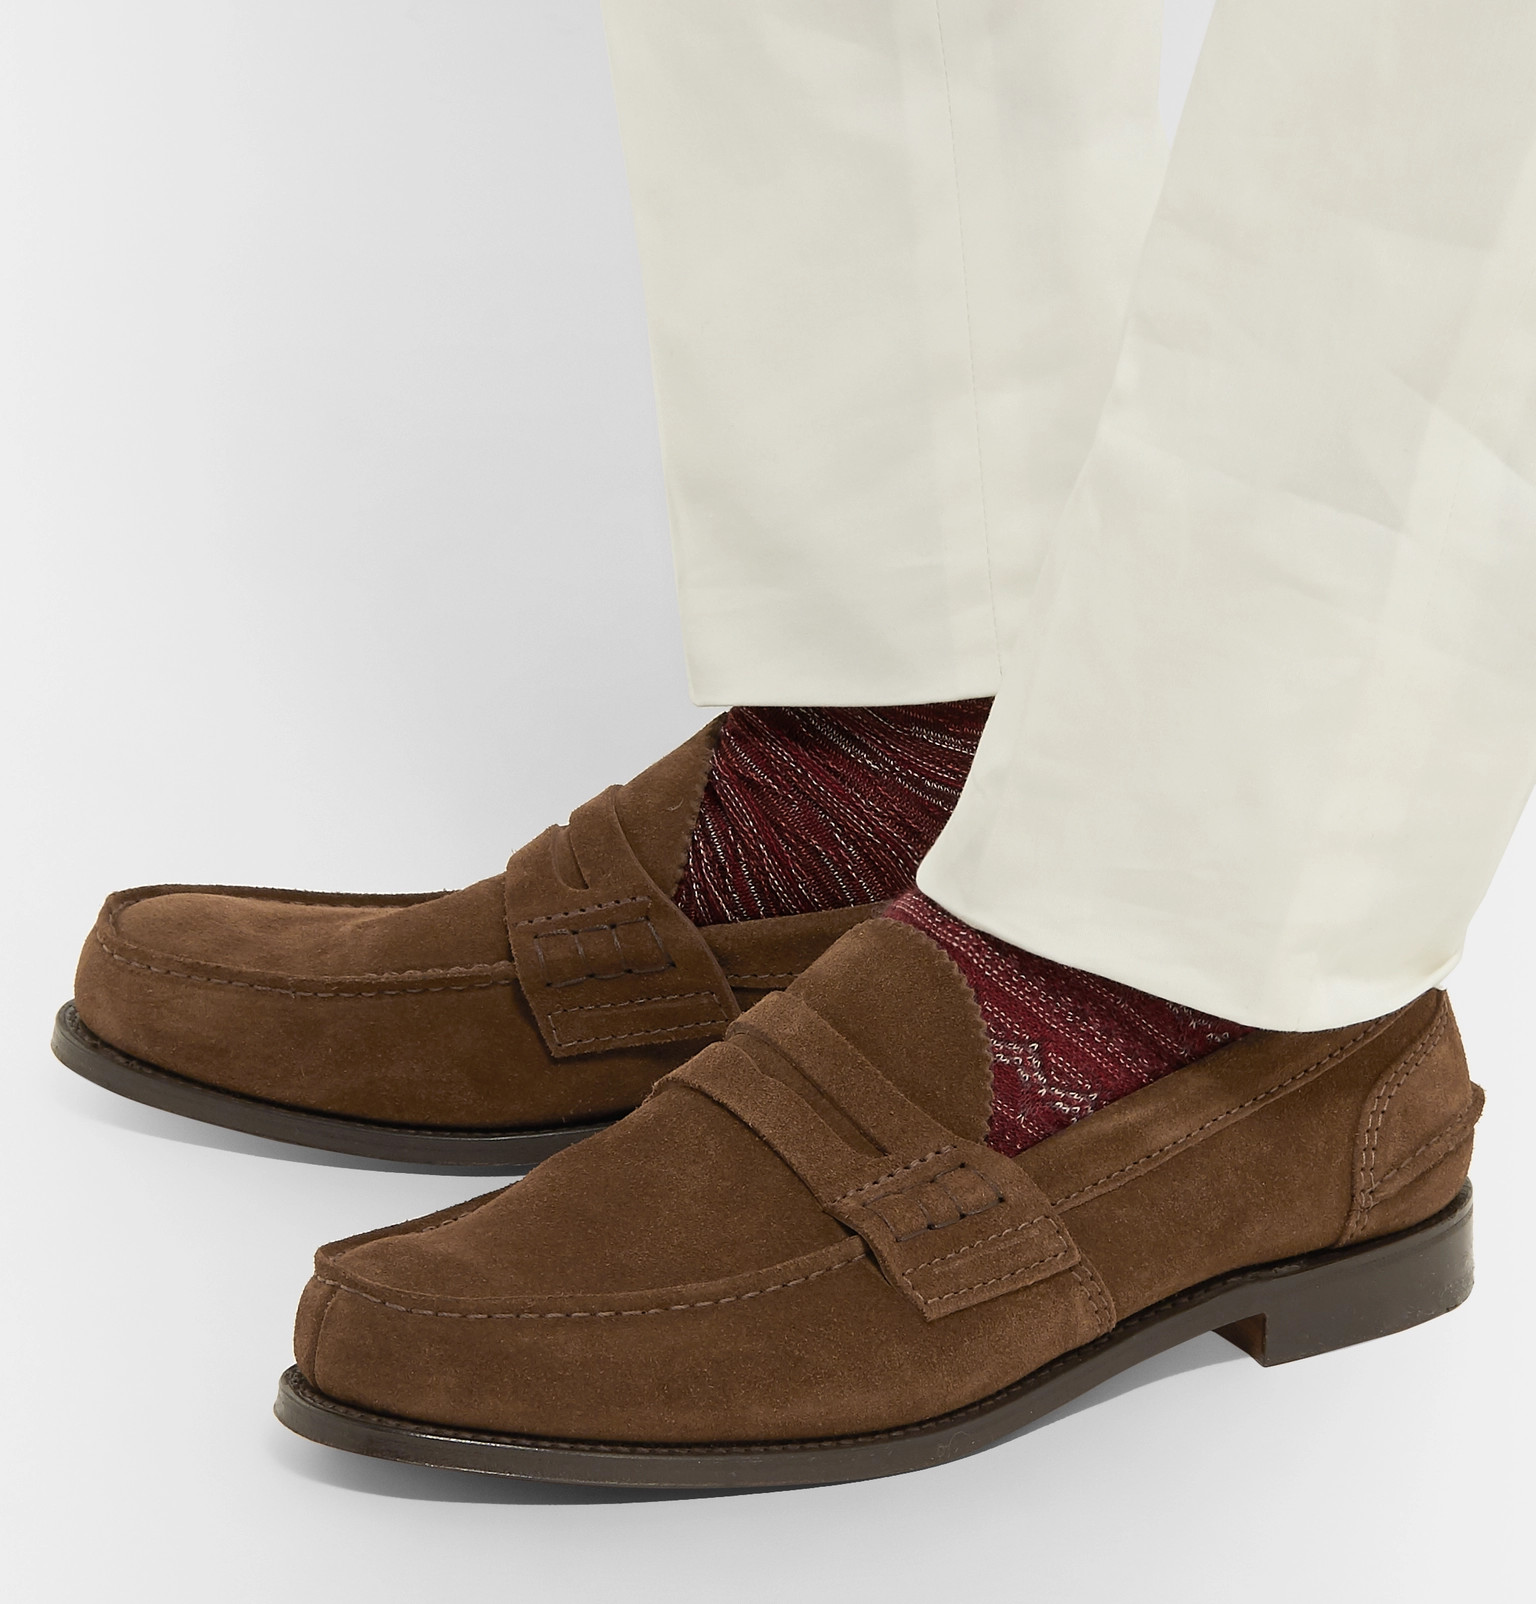 5aa8bf4379c Church s - Pembrey Suede Penny Loafers